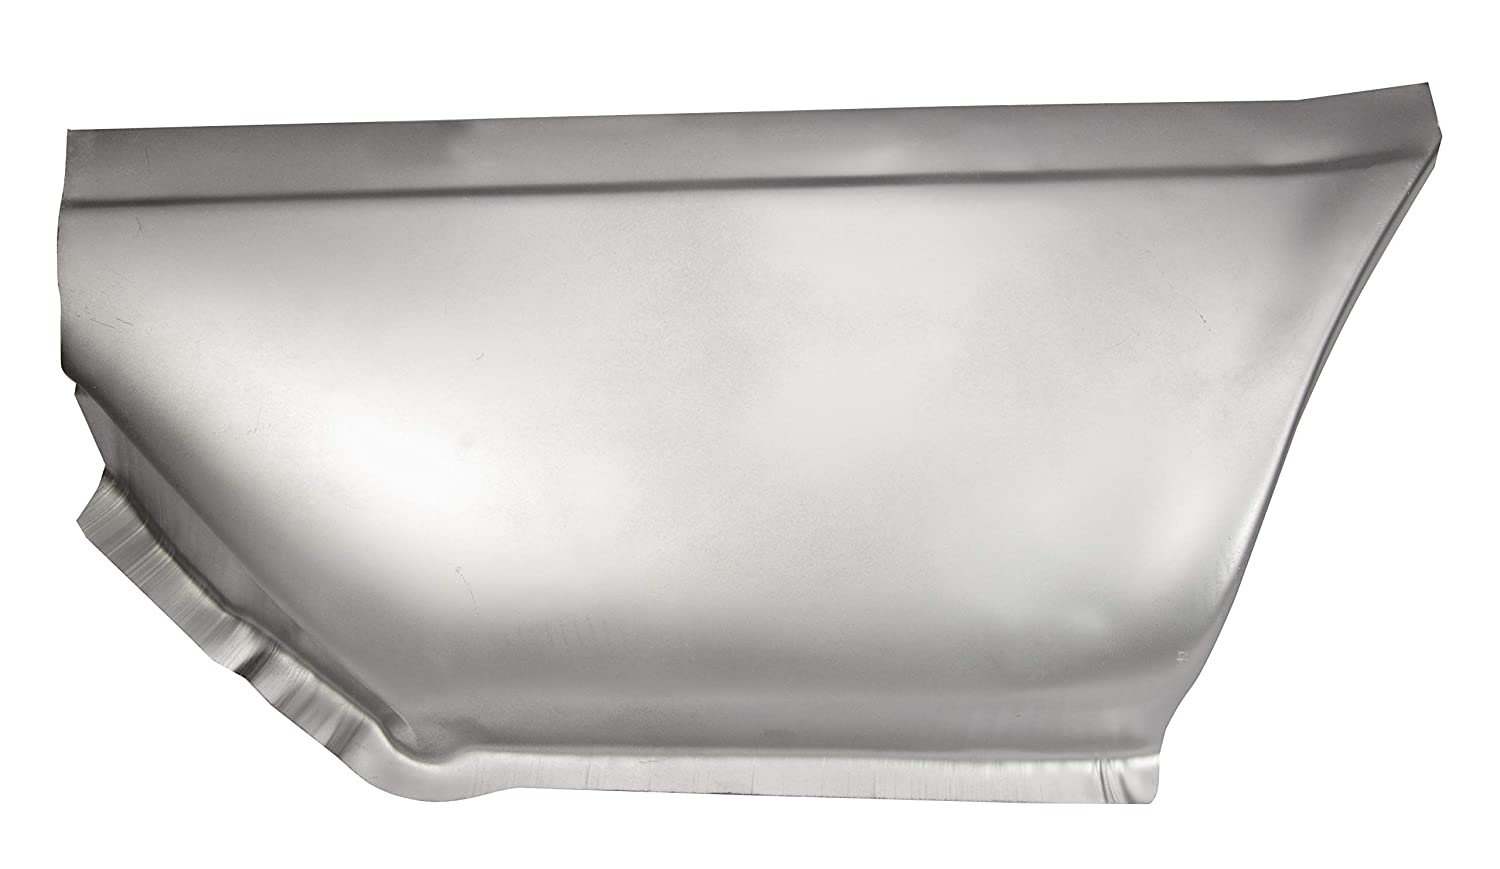 Spectra Premium M100AR Ford Mustang Rear Passenger Side Lower Quarter Panel